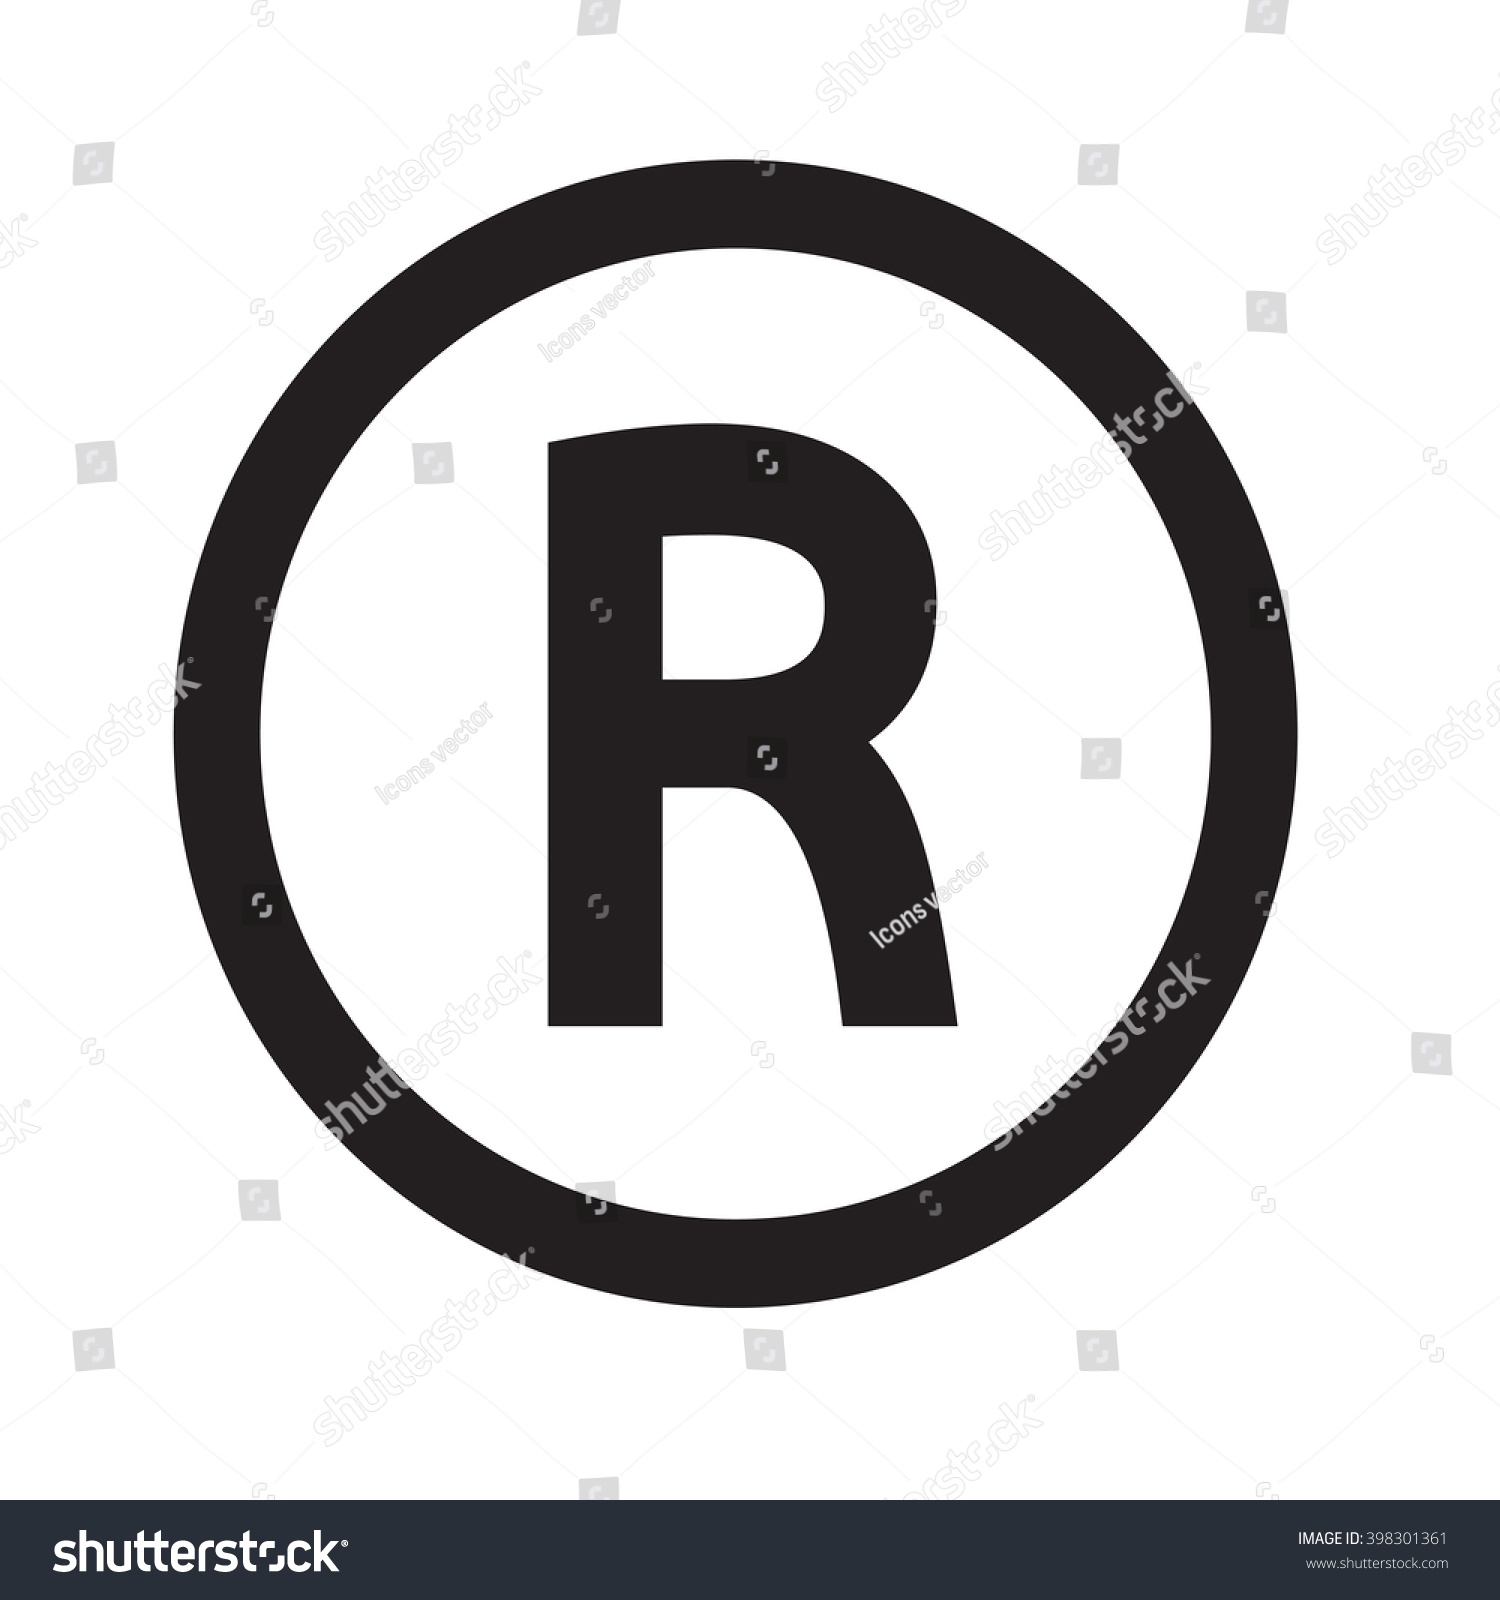 Basic Font Letter R Icon Illustration Stock Vector Hd Royalty Free